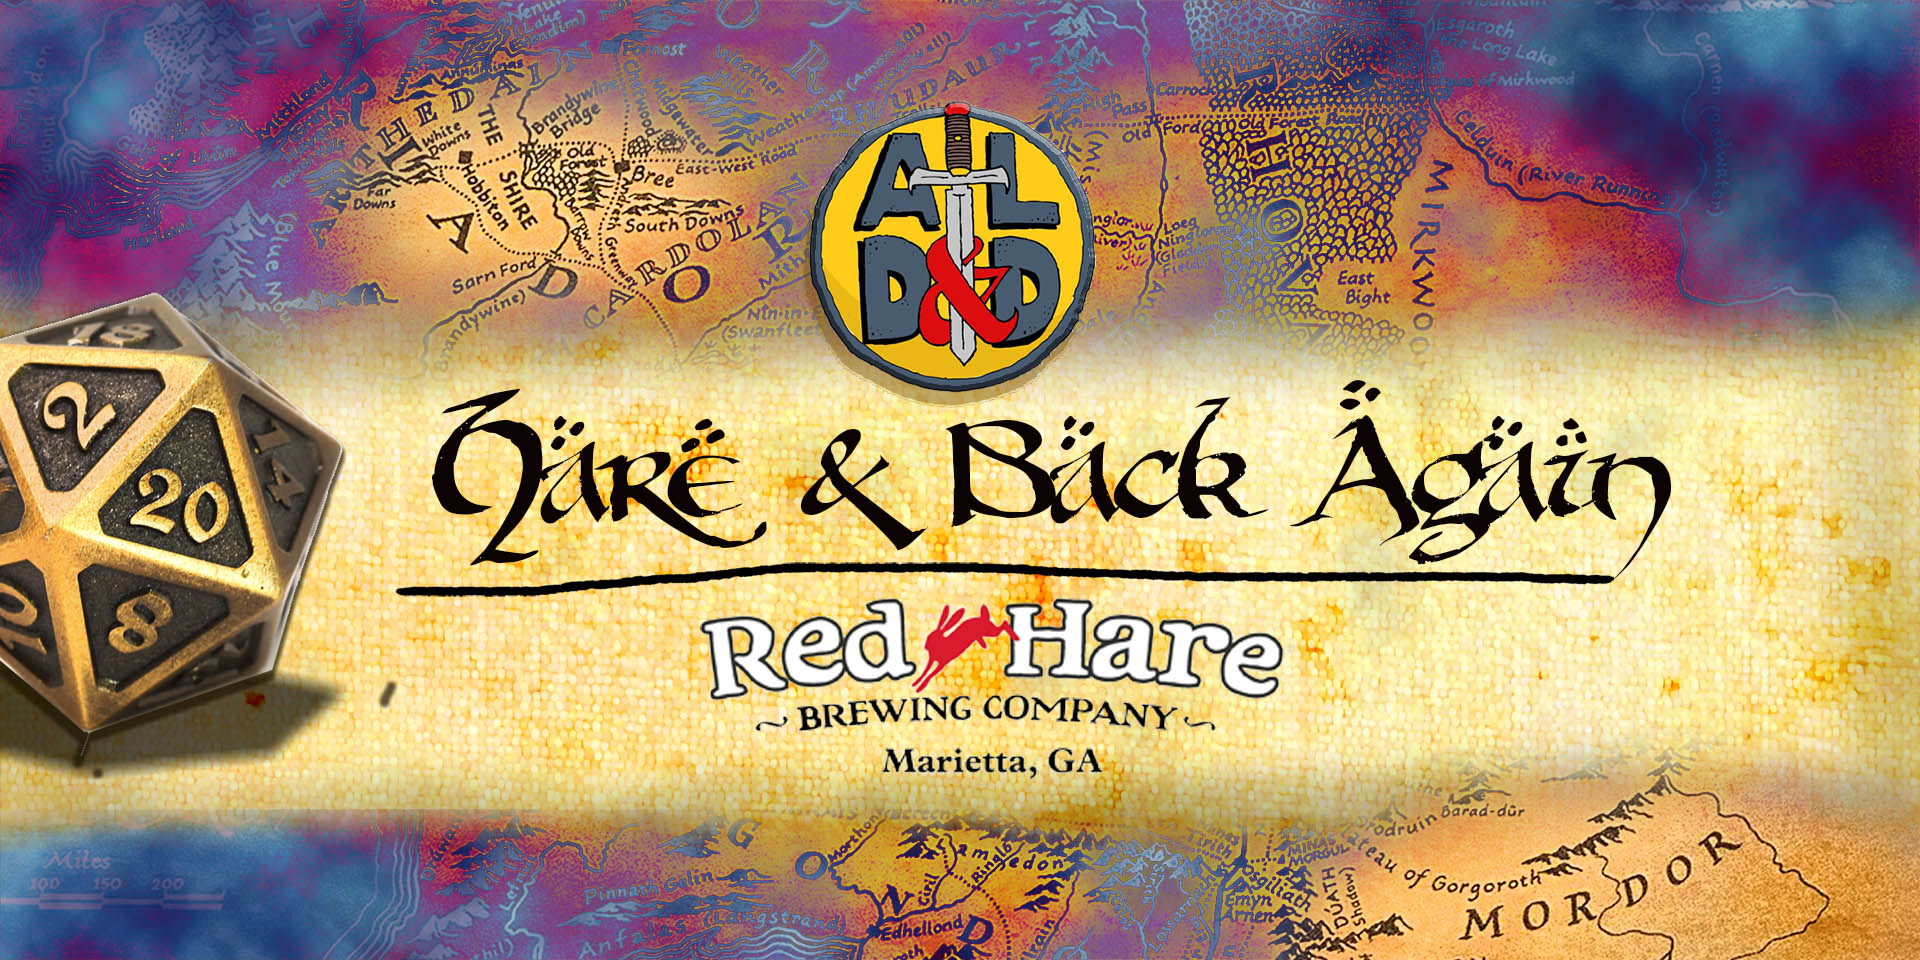 Hare and Back Again Logo